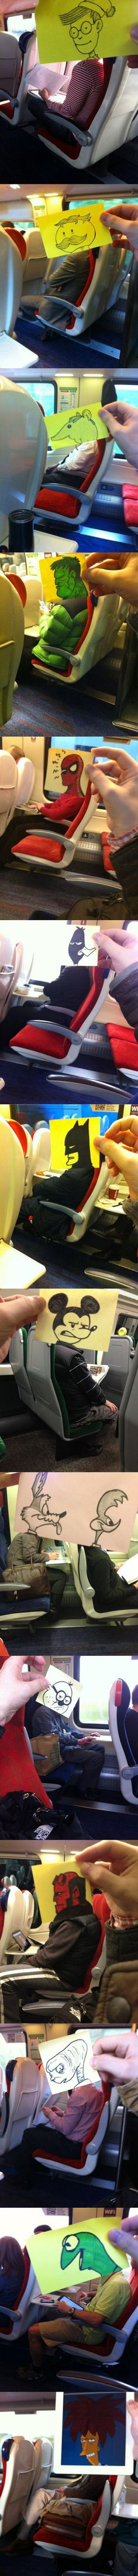 Hilarious post-its/cover-up pictures!